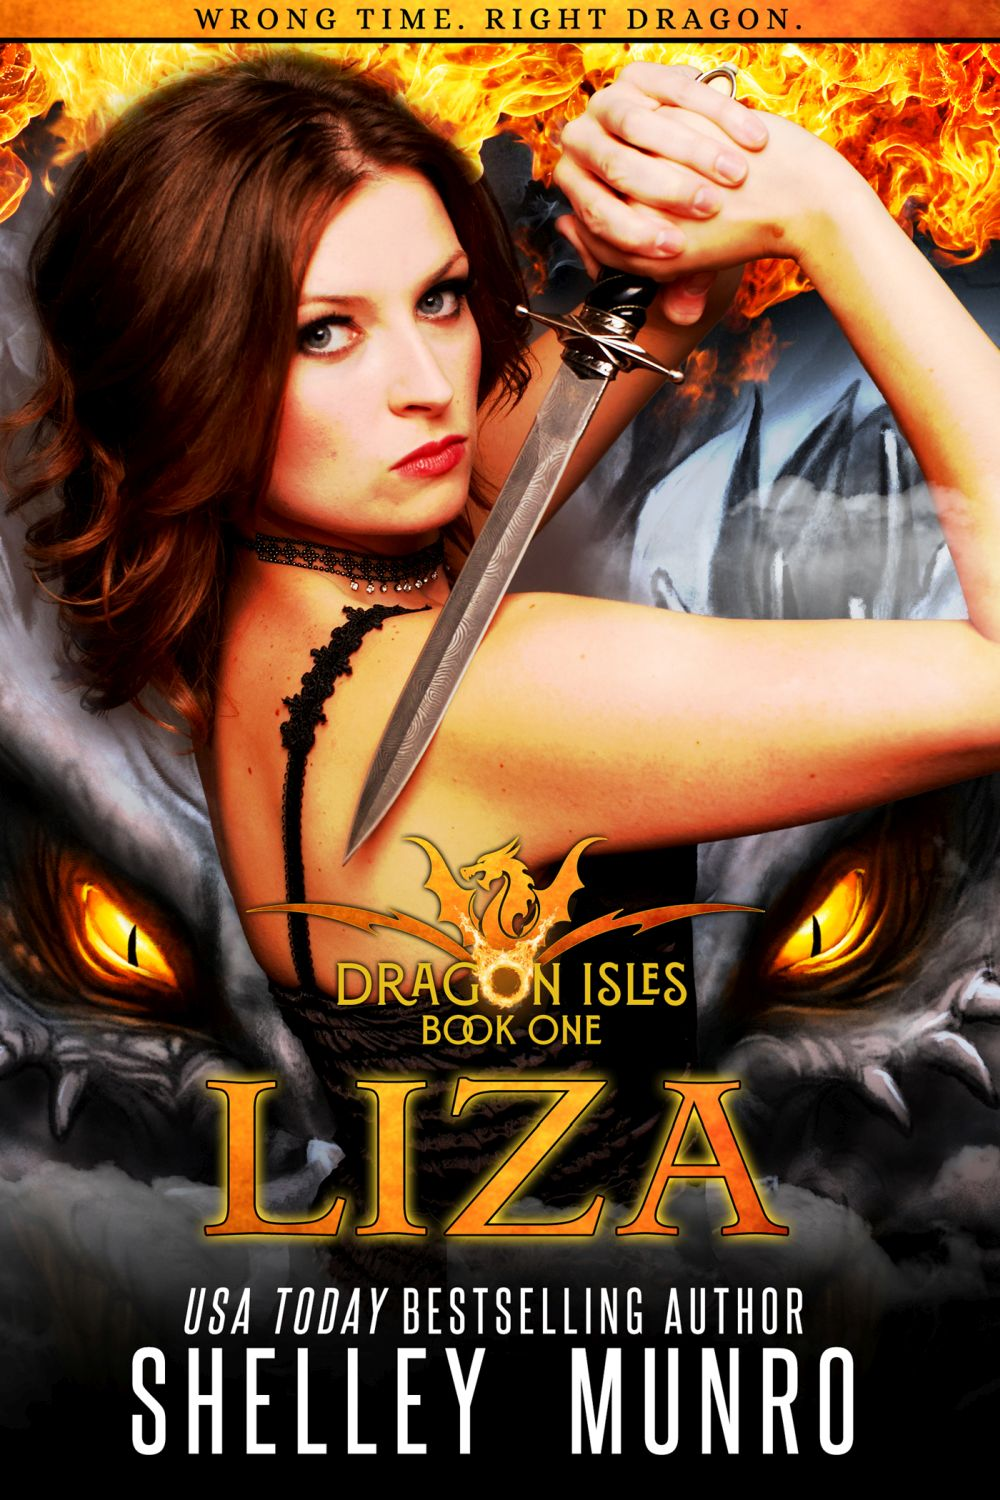 Dragon Isles: Liza by Shelley Munro